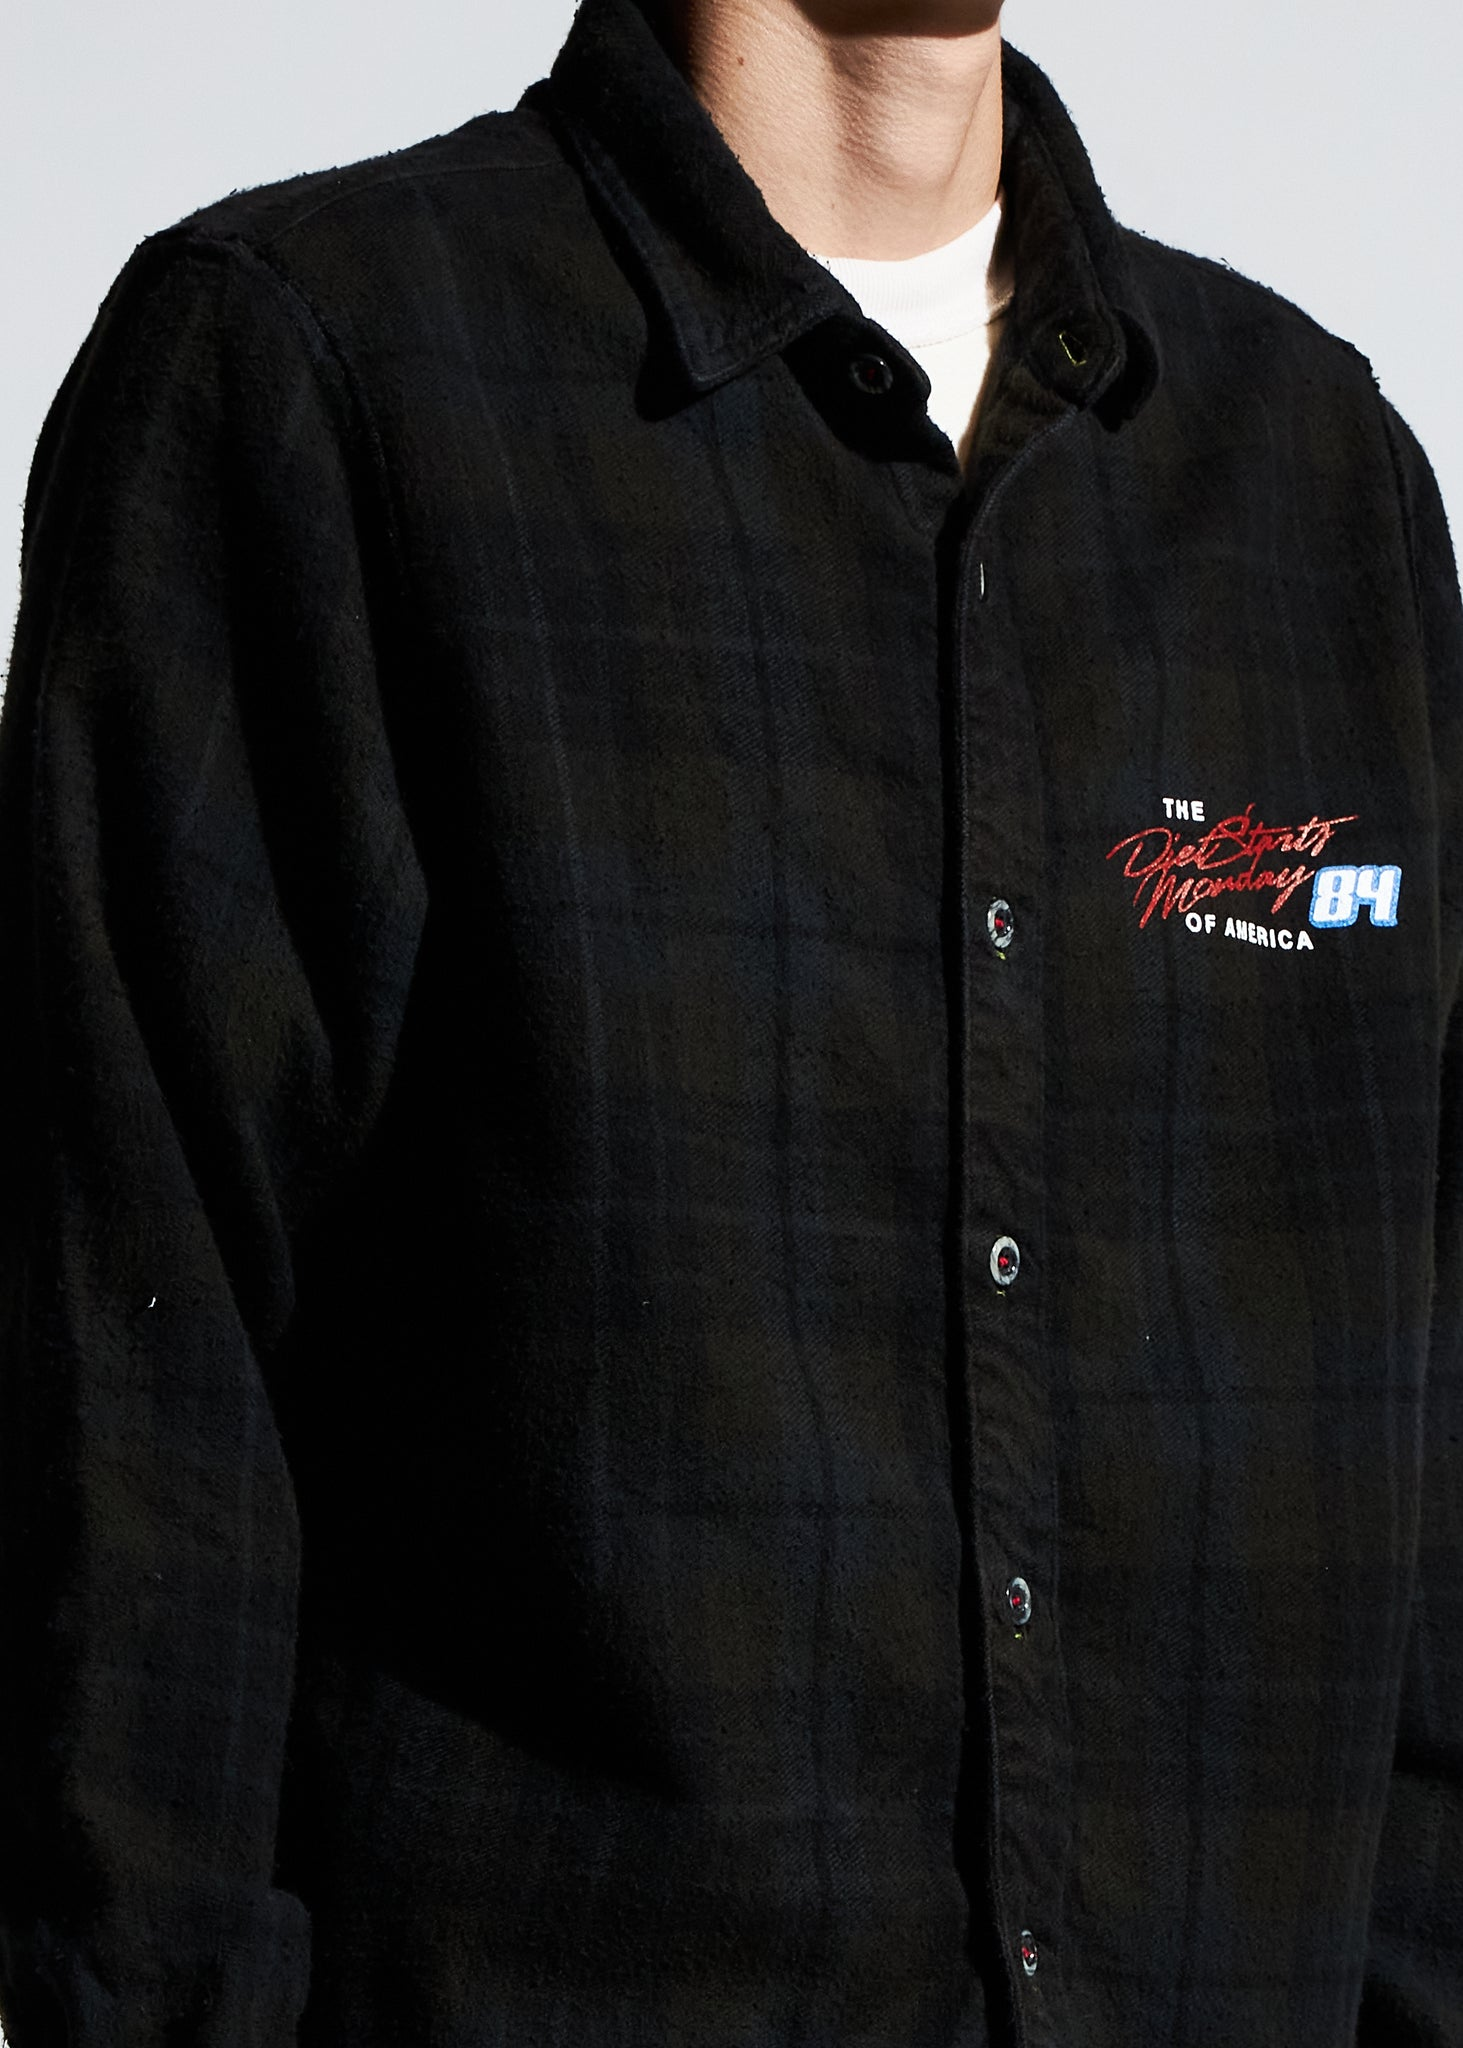 Feel the Power Flannel - Black